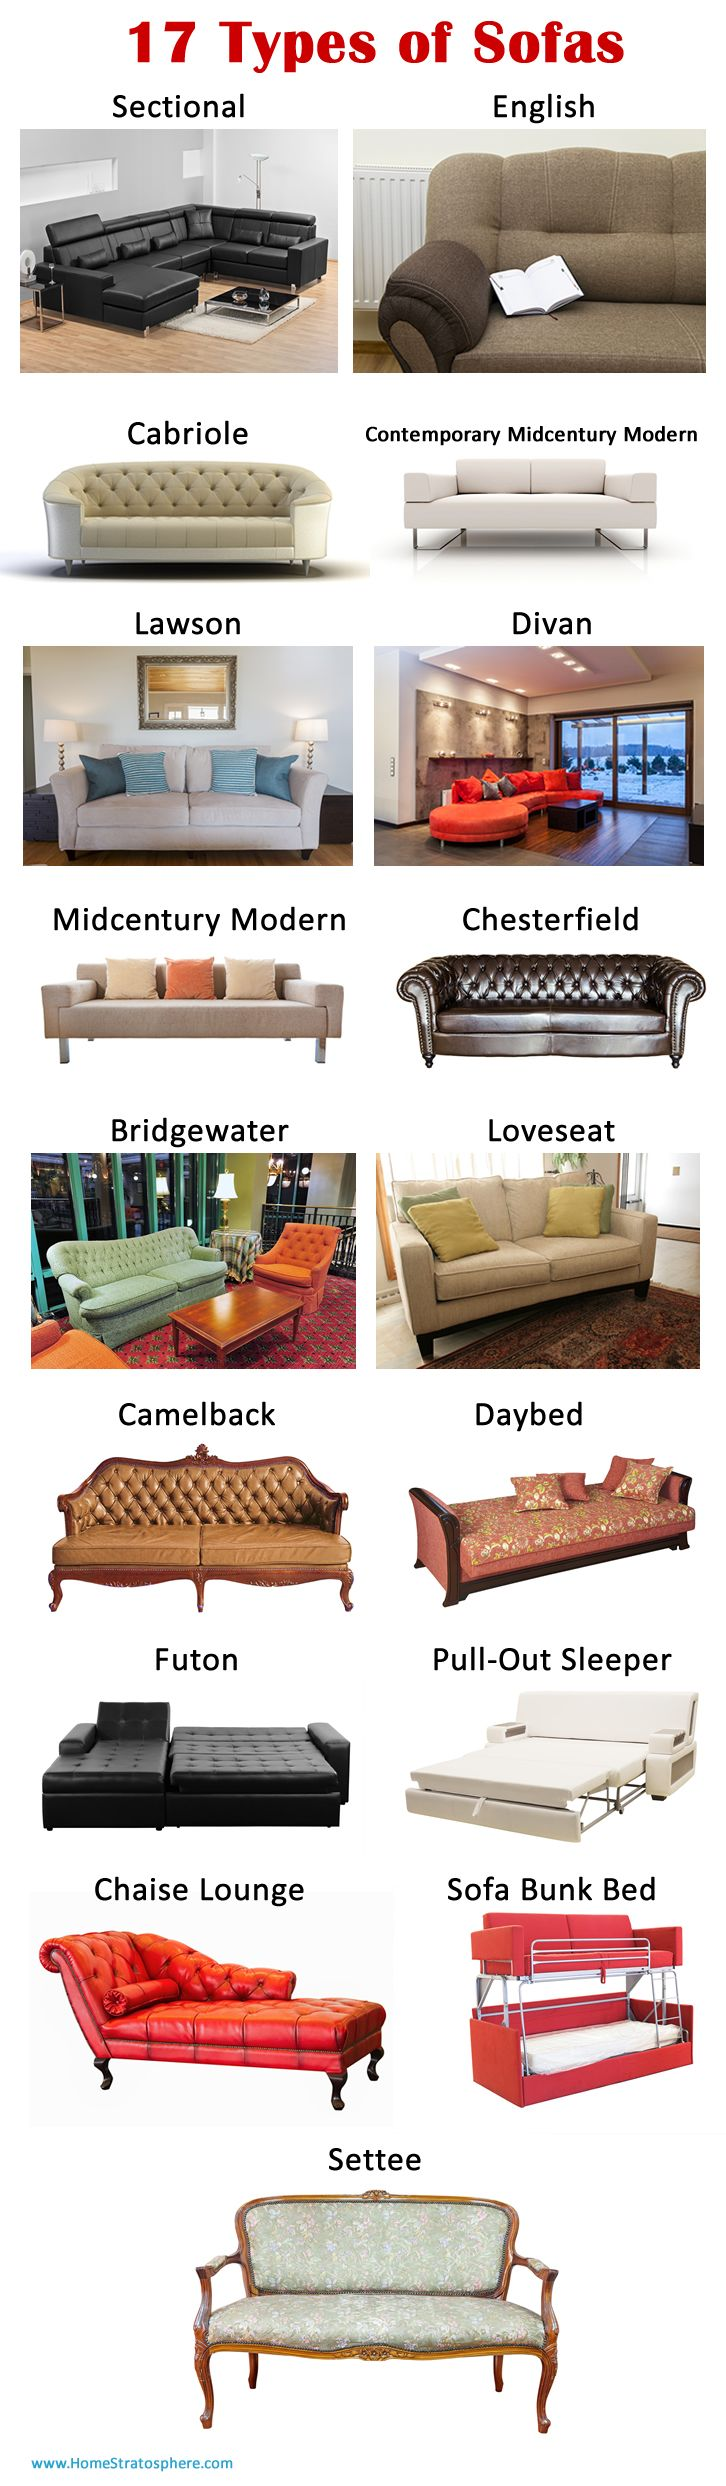 different types of sofas large leather sofa beds uk 20 couches explained with pictures interior 17 click pin for an explanation each type design